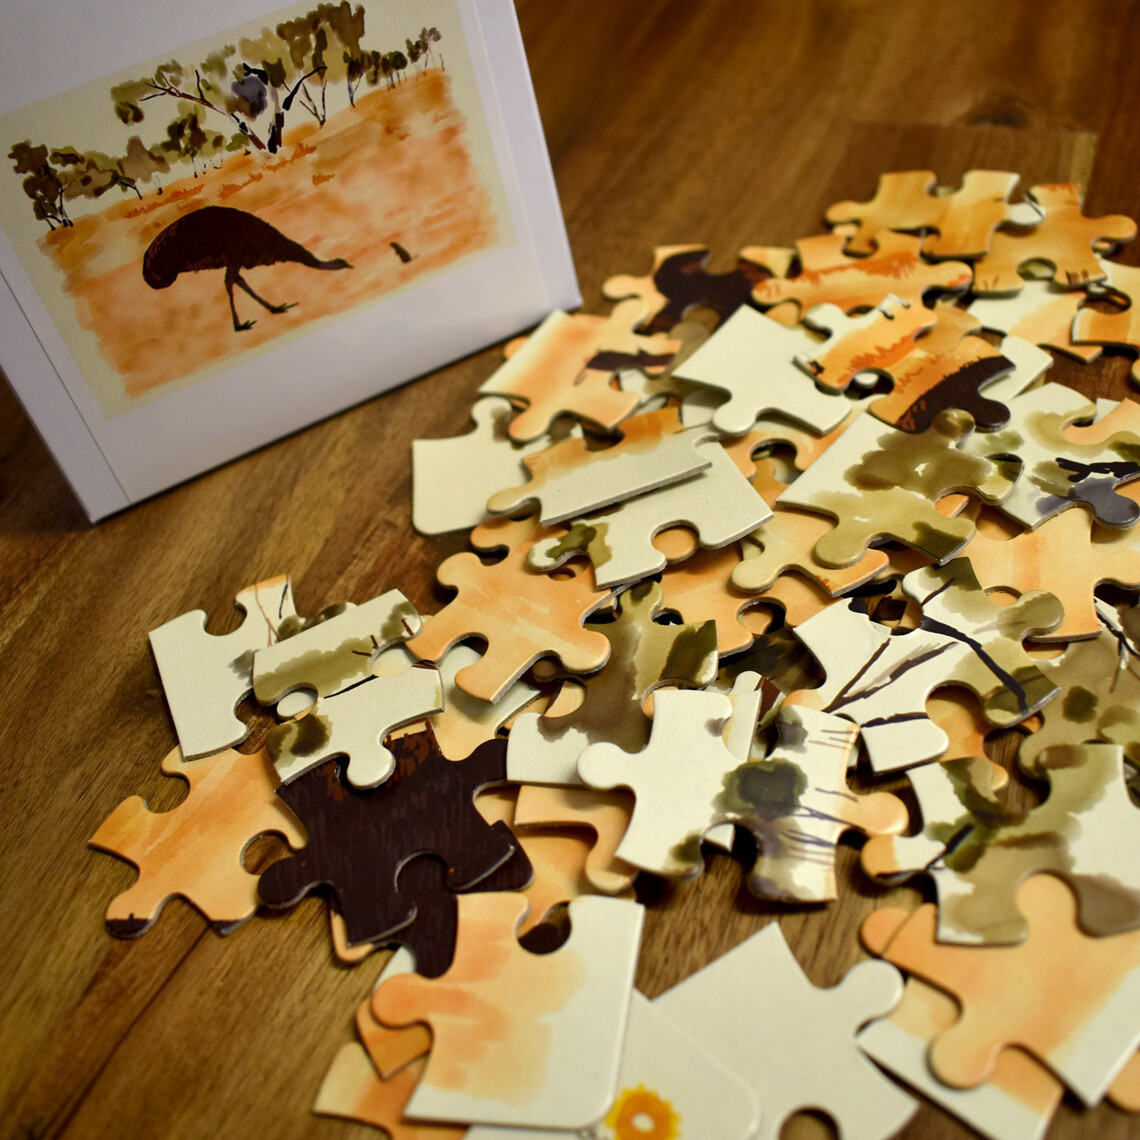 Athakwere Akweke Angkethakwe (The Thirsty Little Mouse) Jigsaw Puzzle